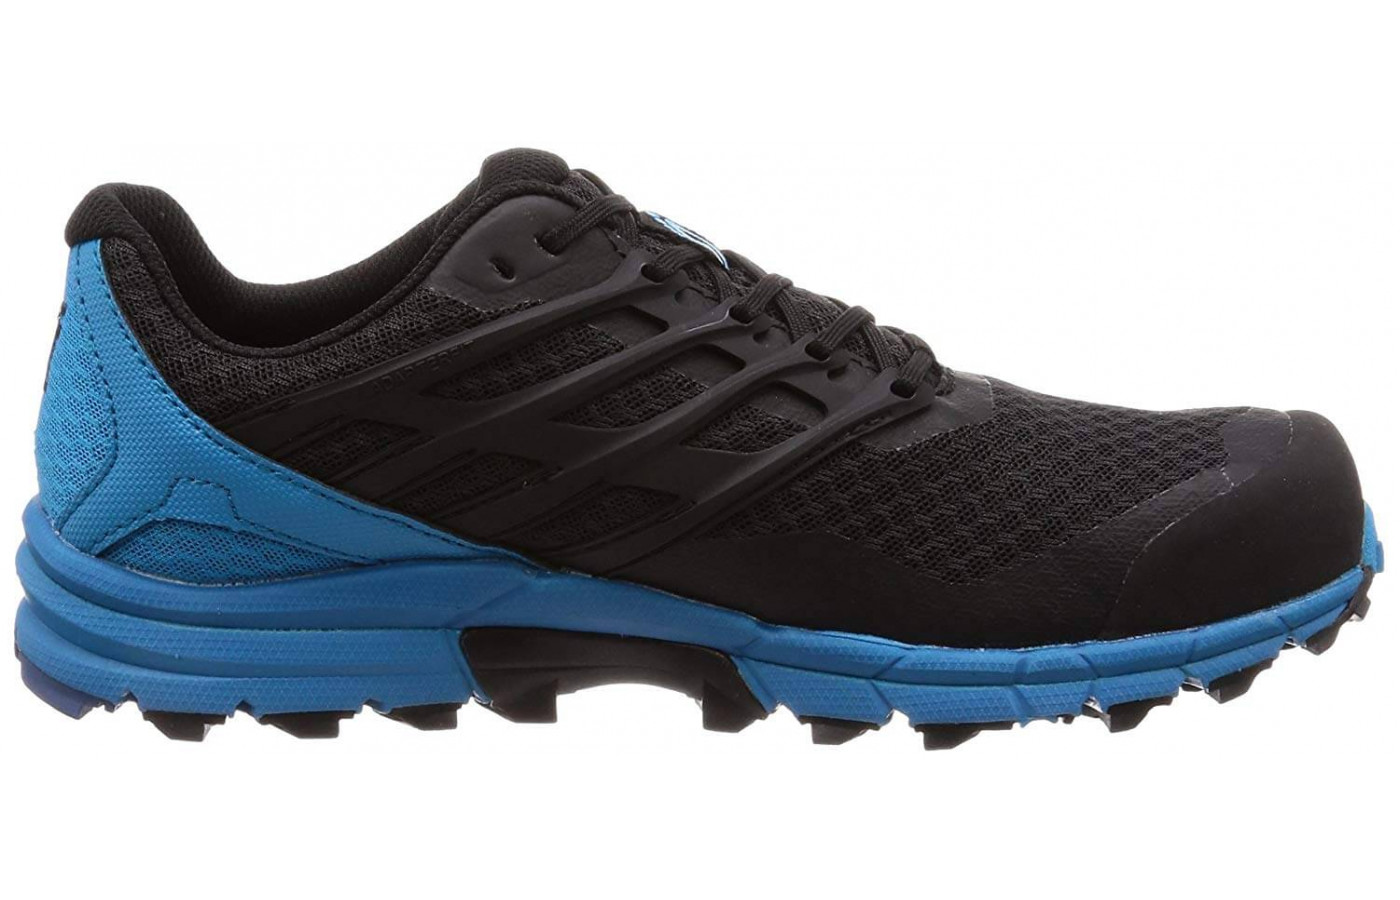 Inov-8 Trailtalon 290 side